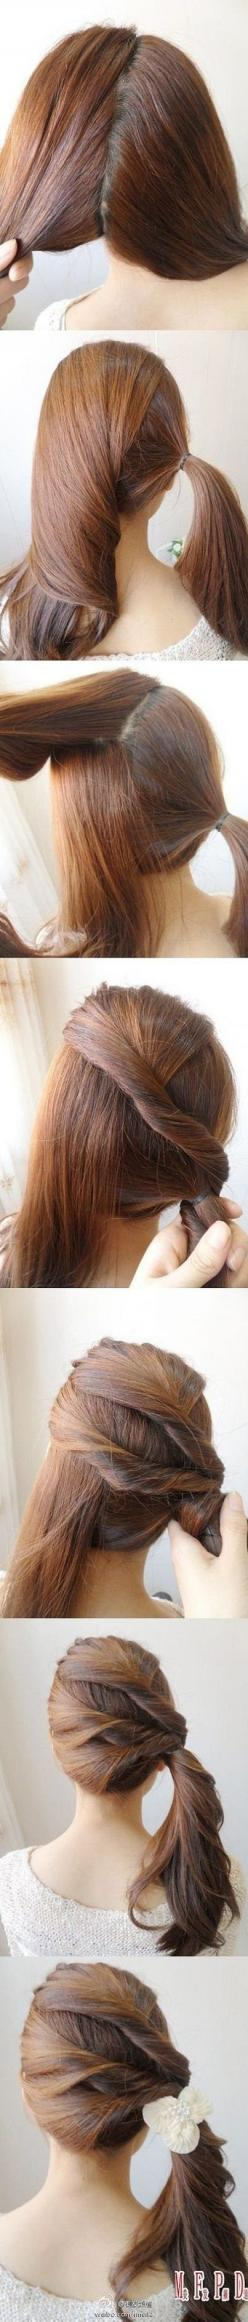 Cute ponytail: Pony Tail, Hairstyles, Make Up, Idea, Hair Styles, Hairdos, Makeup, Hair Twist, Side Ponytails